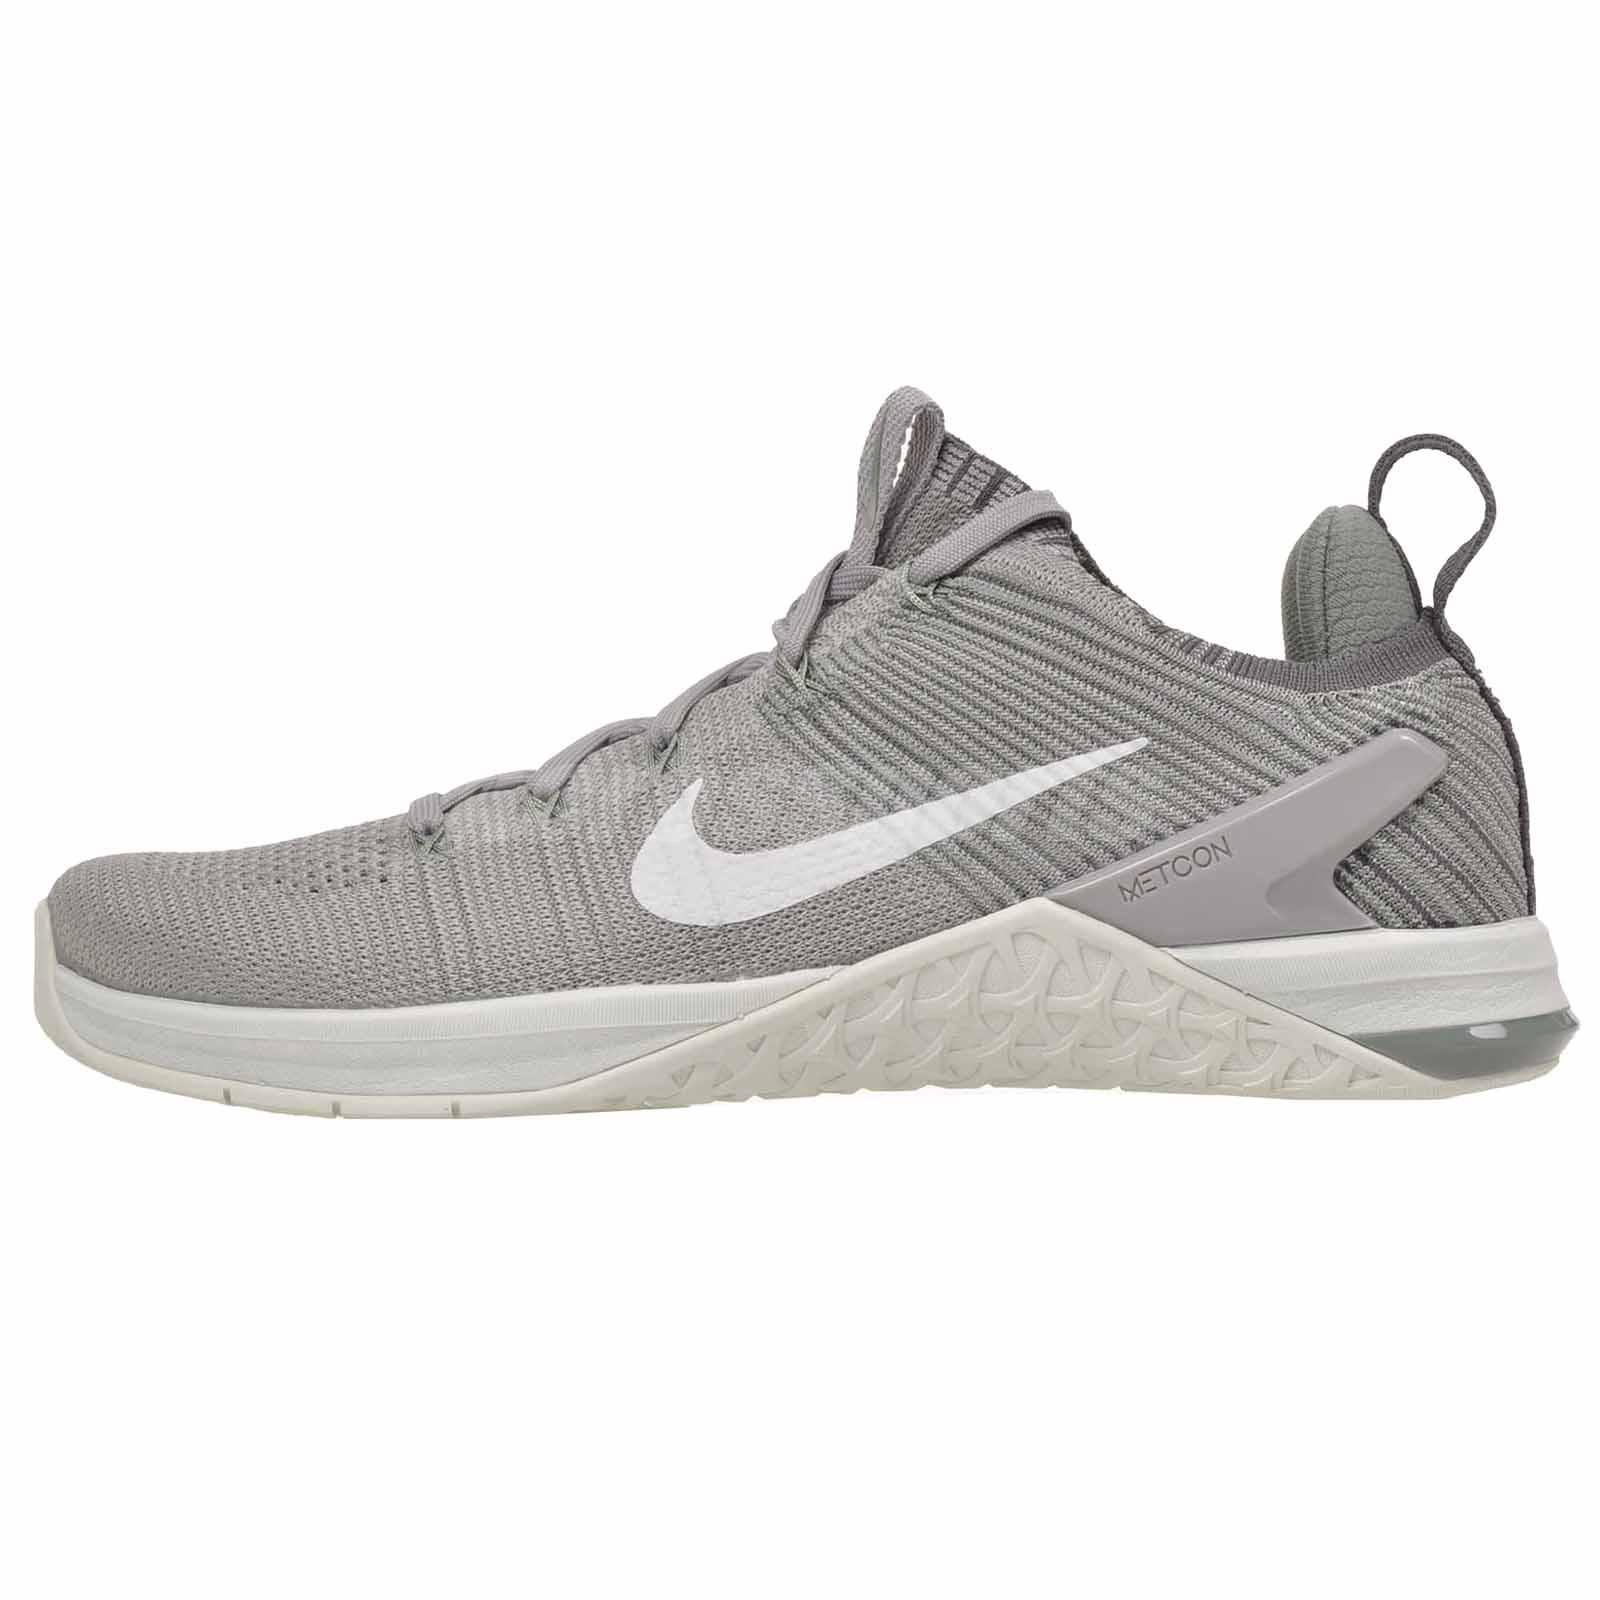 0a37f347d31449 Details about Nike Wmns Metcon DSX Flyknit 2 Cross Training Womens Shoes  Grey 924595-004